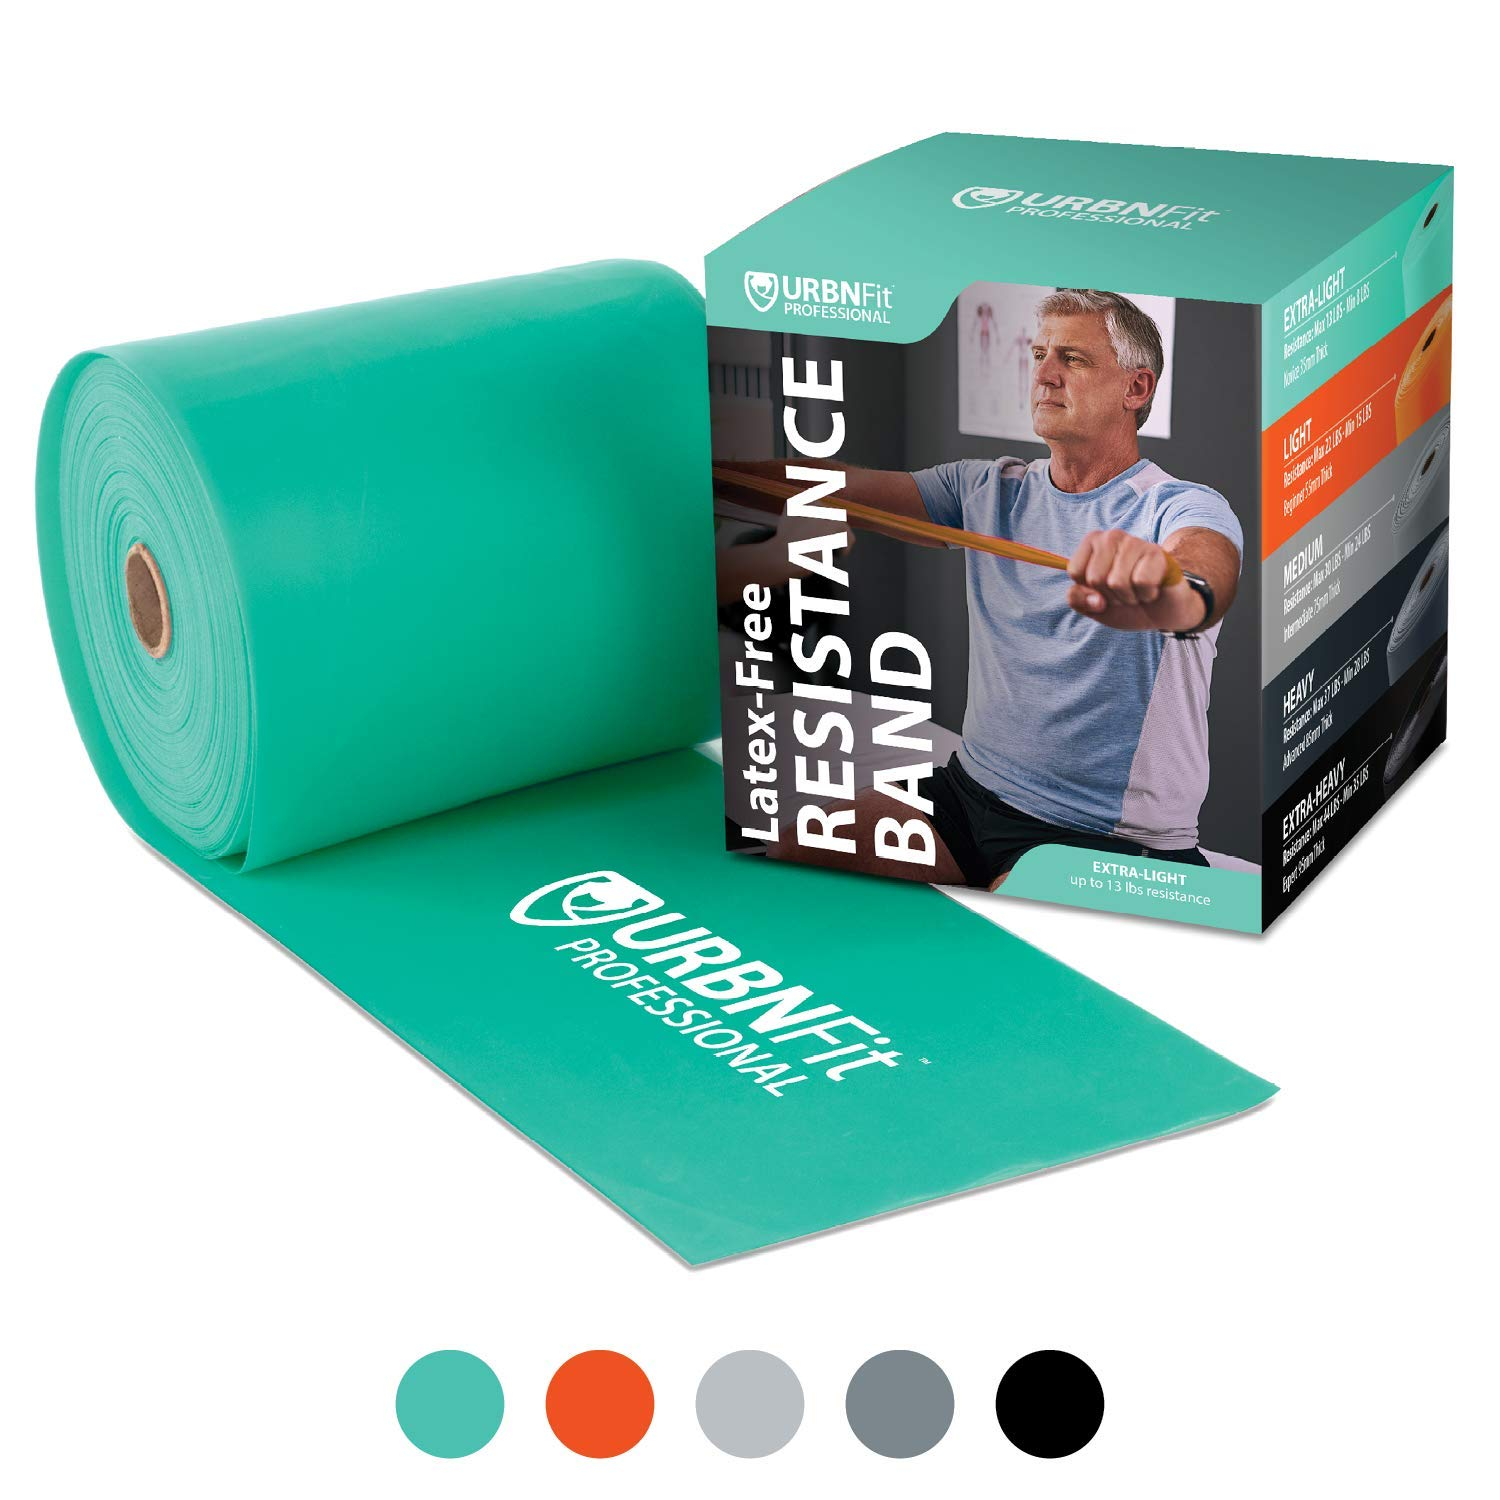 Professional Resistance Bands - 25 Yards (75ft) Latex-Free Elastic Exercise Fitness Band Roll - No Scent, No Powder - Perfect for Physical Therapy & Rehab, Yoga, Pilates (Teal - Light .35mm)